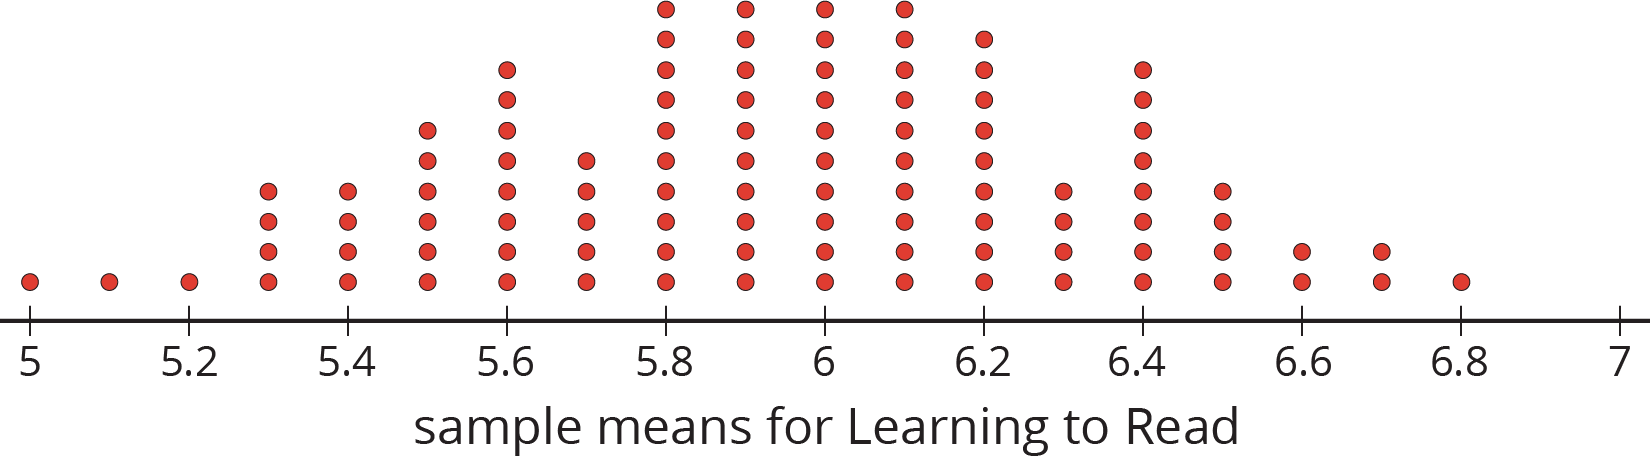 """A dot plot for """"sample means for Learning to Read"""" with the numbers 5 through 7, in increments of zero point 2, indicated. The data are as follows:  5 years old, 1 dot. 5 point 1 years old, 1 dot. 5 point 2 years old, 1 dot. 5 point 3 years old, 4 dots. 5 point 4 years old, 4 dots. 5 point 5 years old, 6 dots. 5 point 6 years old, 8 dots. 5 point 7 years old, 5 dots. 5 point 8 years old, 10 dots. 5 point 9 years old, 10 dots. 6 years old, 10 dots. 6 point 1 years old, 10 dots. 6 point 2 years old, 9 dots. 6 point 3 years old, 4 dots. 6 point 4 years old, 8 dots. 6 point 5 years old, 4 dots. 6 point 6 years old, 2 dots. 6 point 7 years old, 2 dots. 6 point 8 years old, 1 dot."""